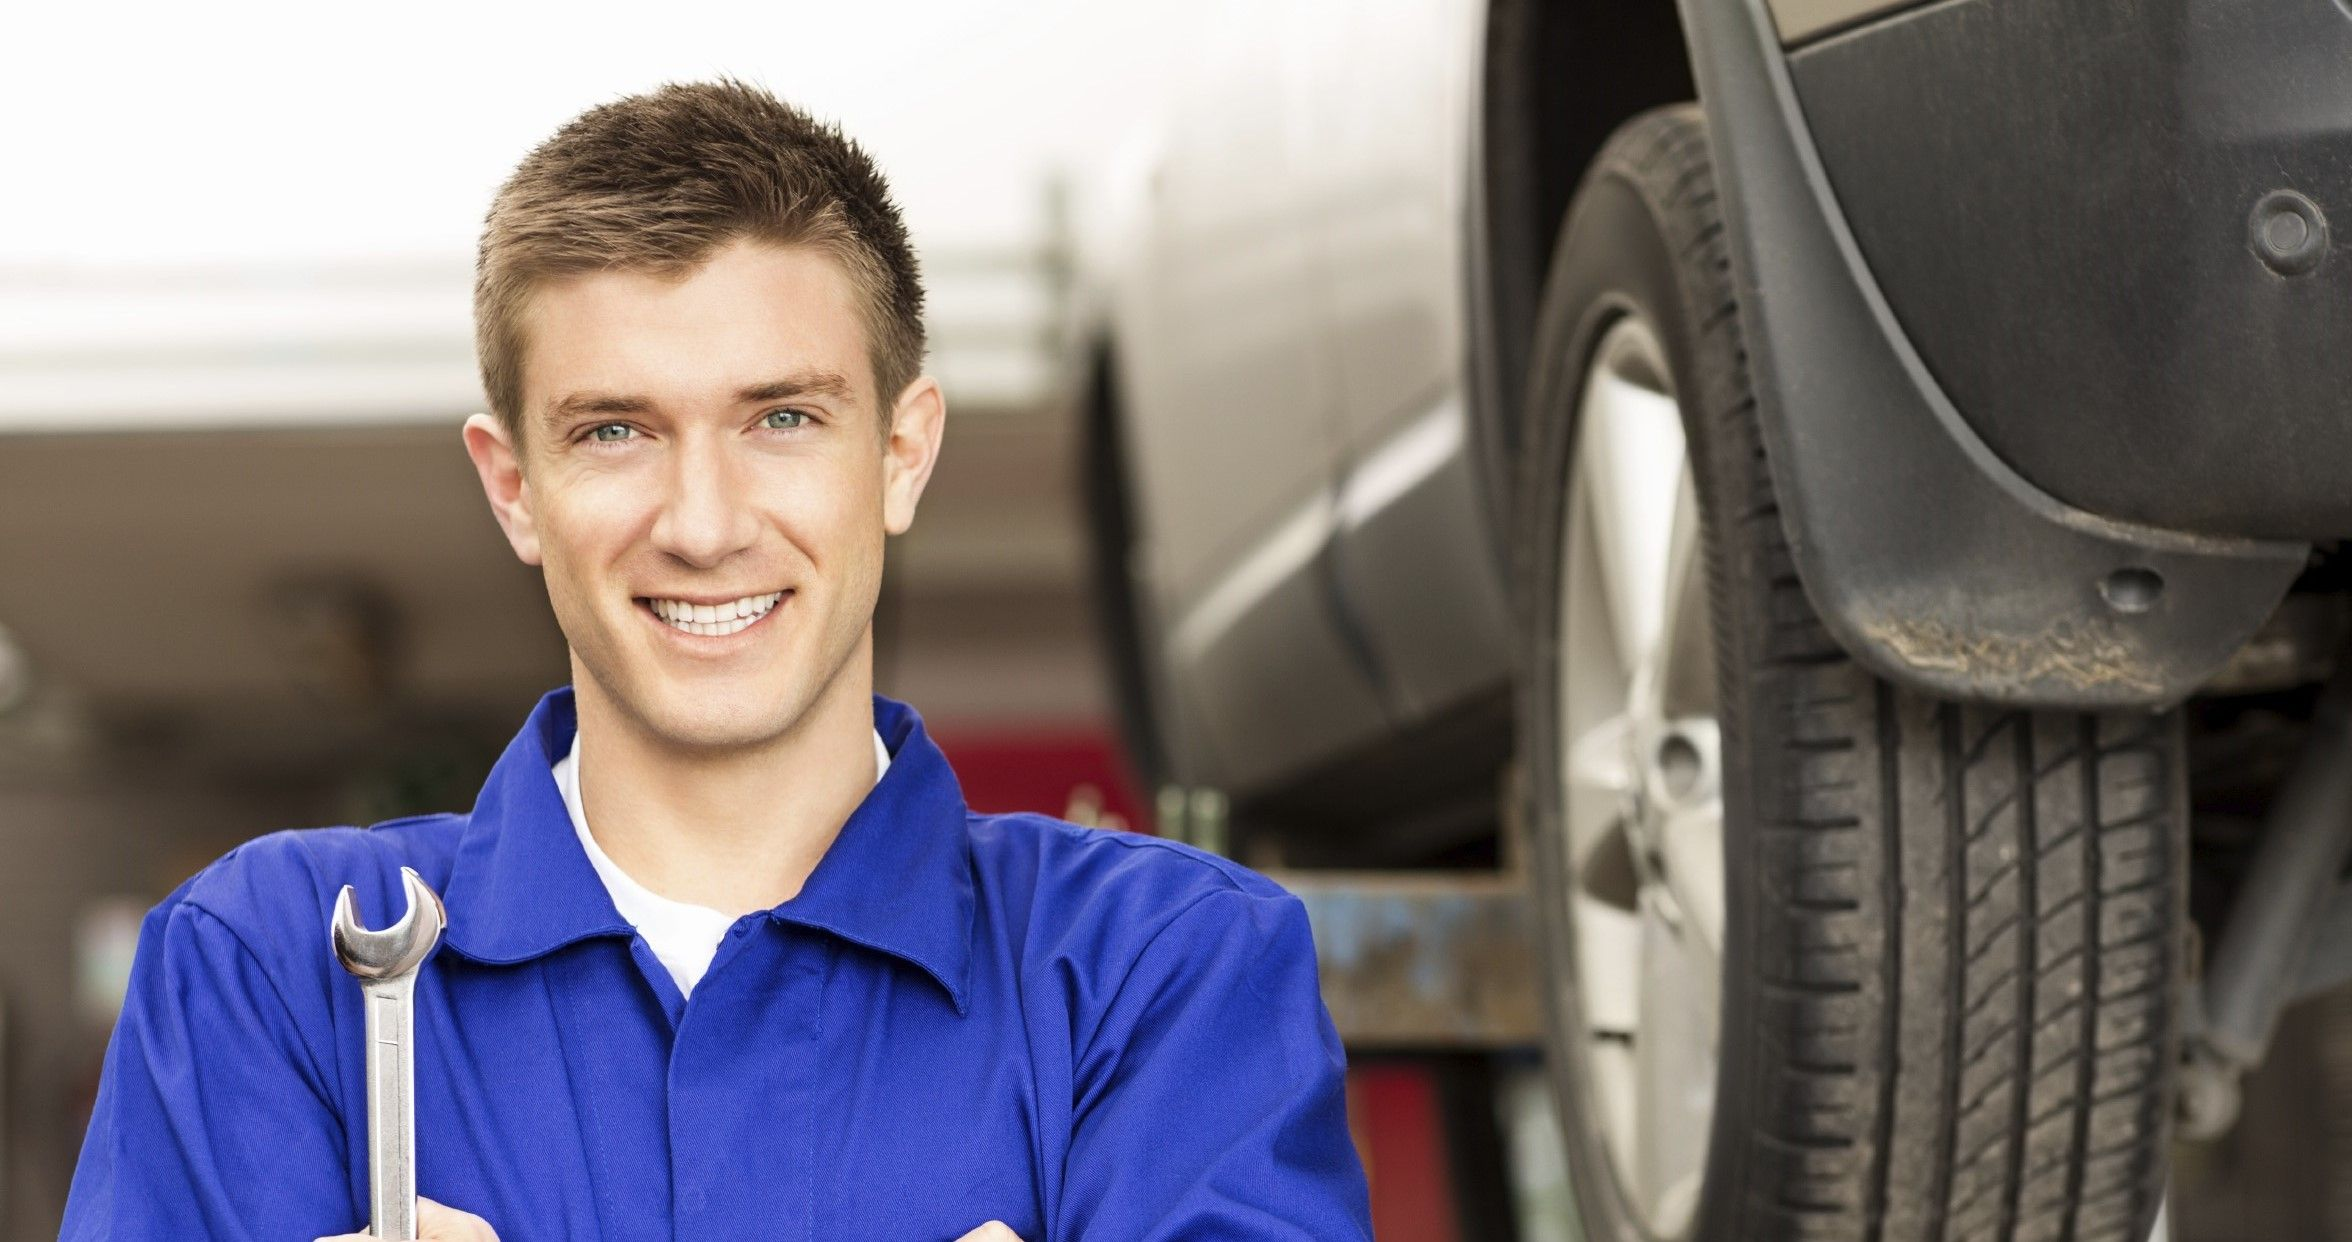 Let Our Technicians Take Care of Your Car!